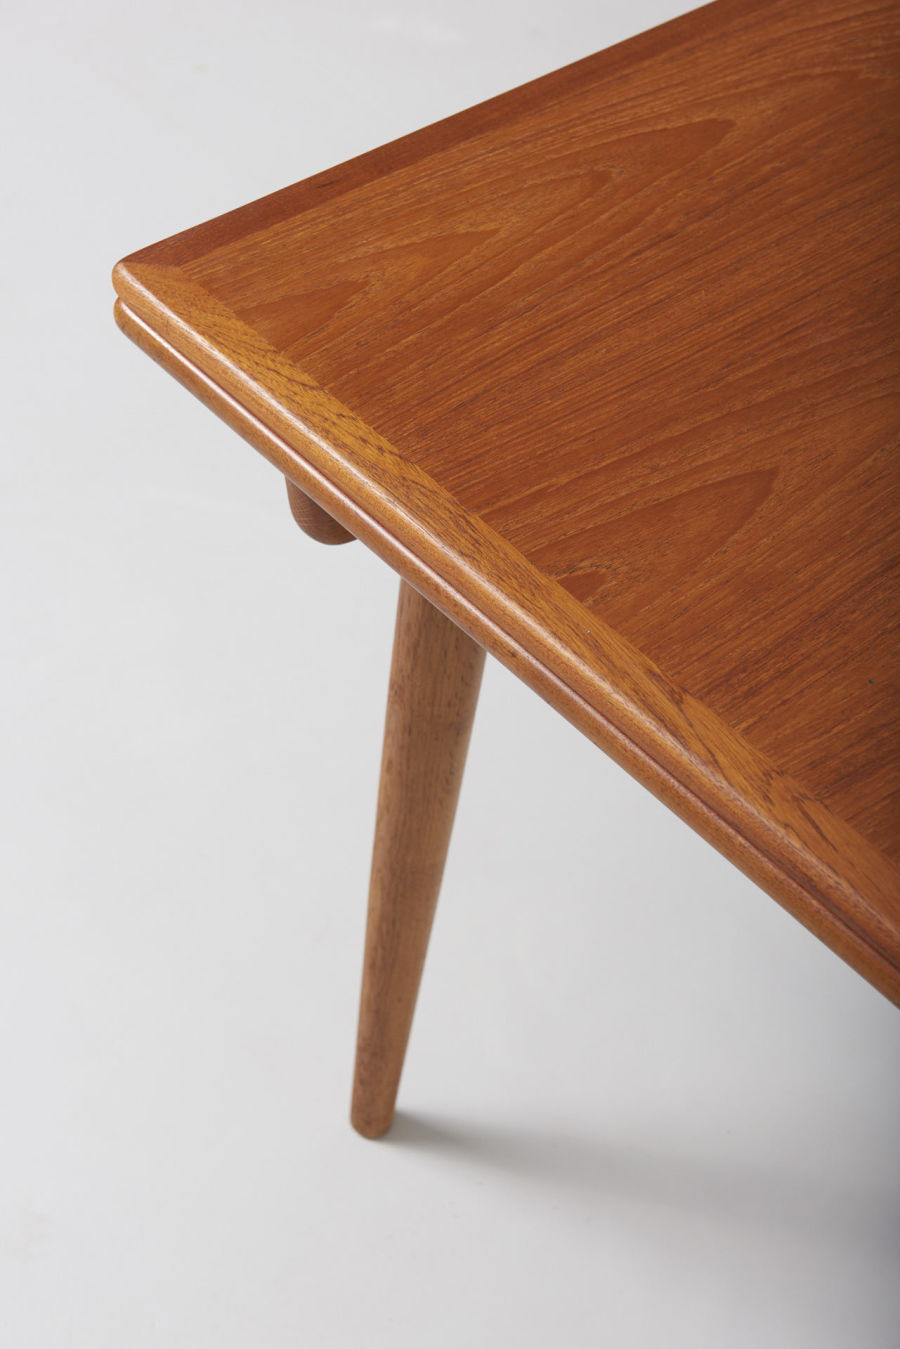 modestfurniture-vintage-1869-hans-wegner-dining-table-andreas-tuck-at-31214